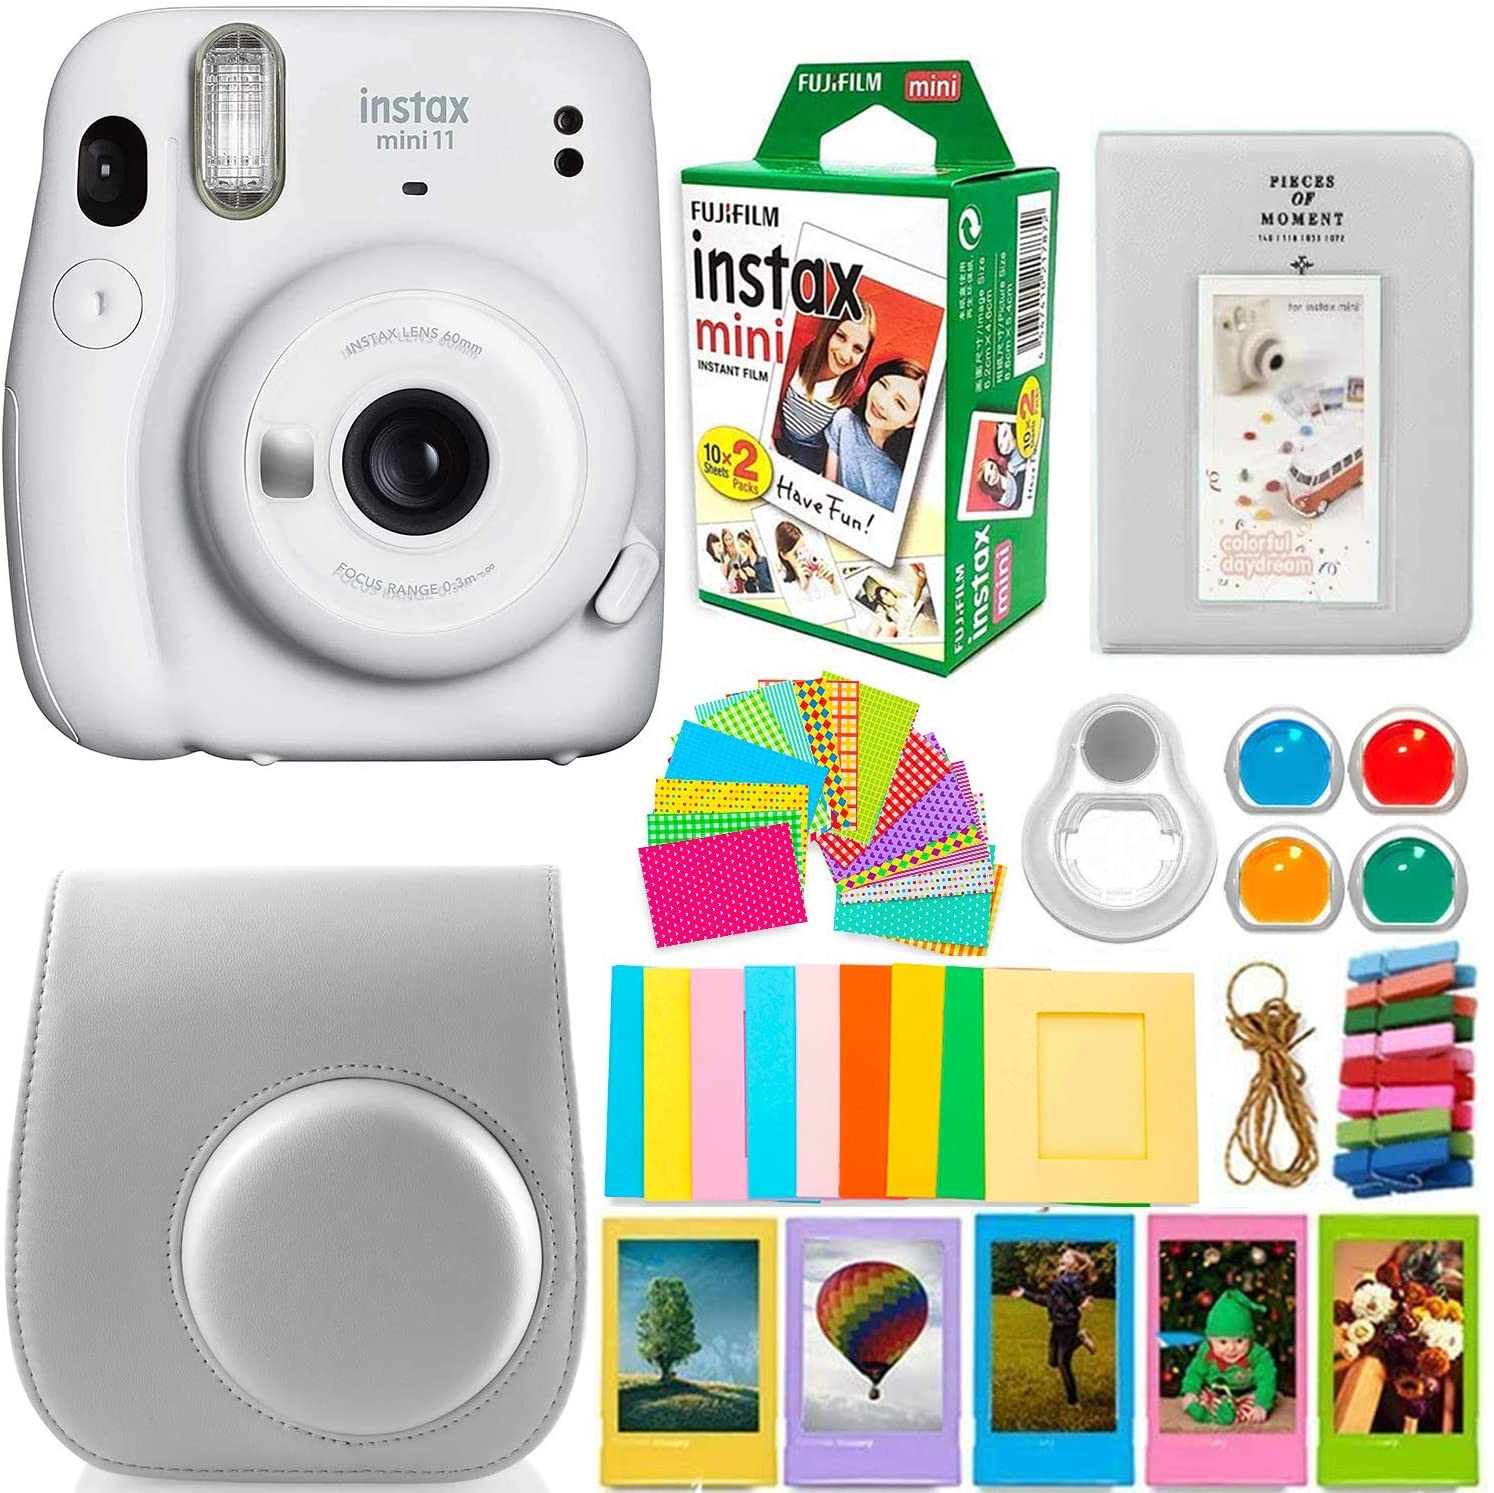 Fujifilm Instax Mini 11 Camera Bundle Only $99.95! This is the Best Price I'm Seeing!